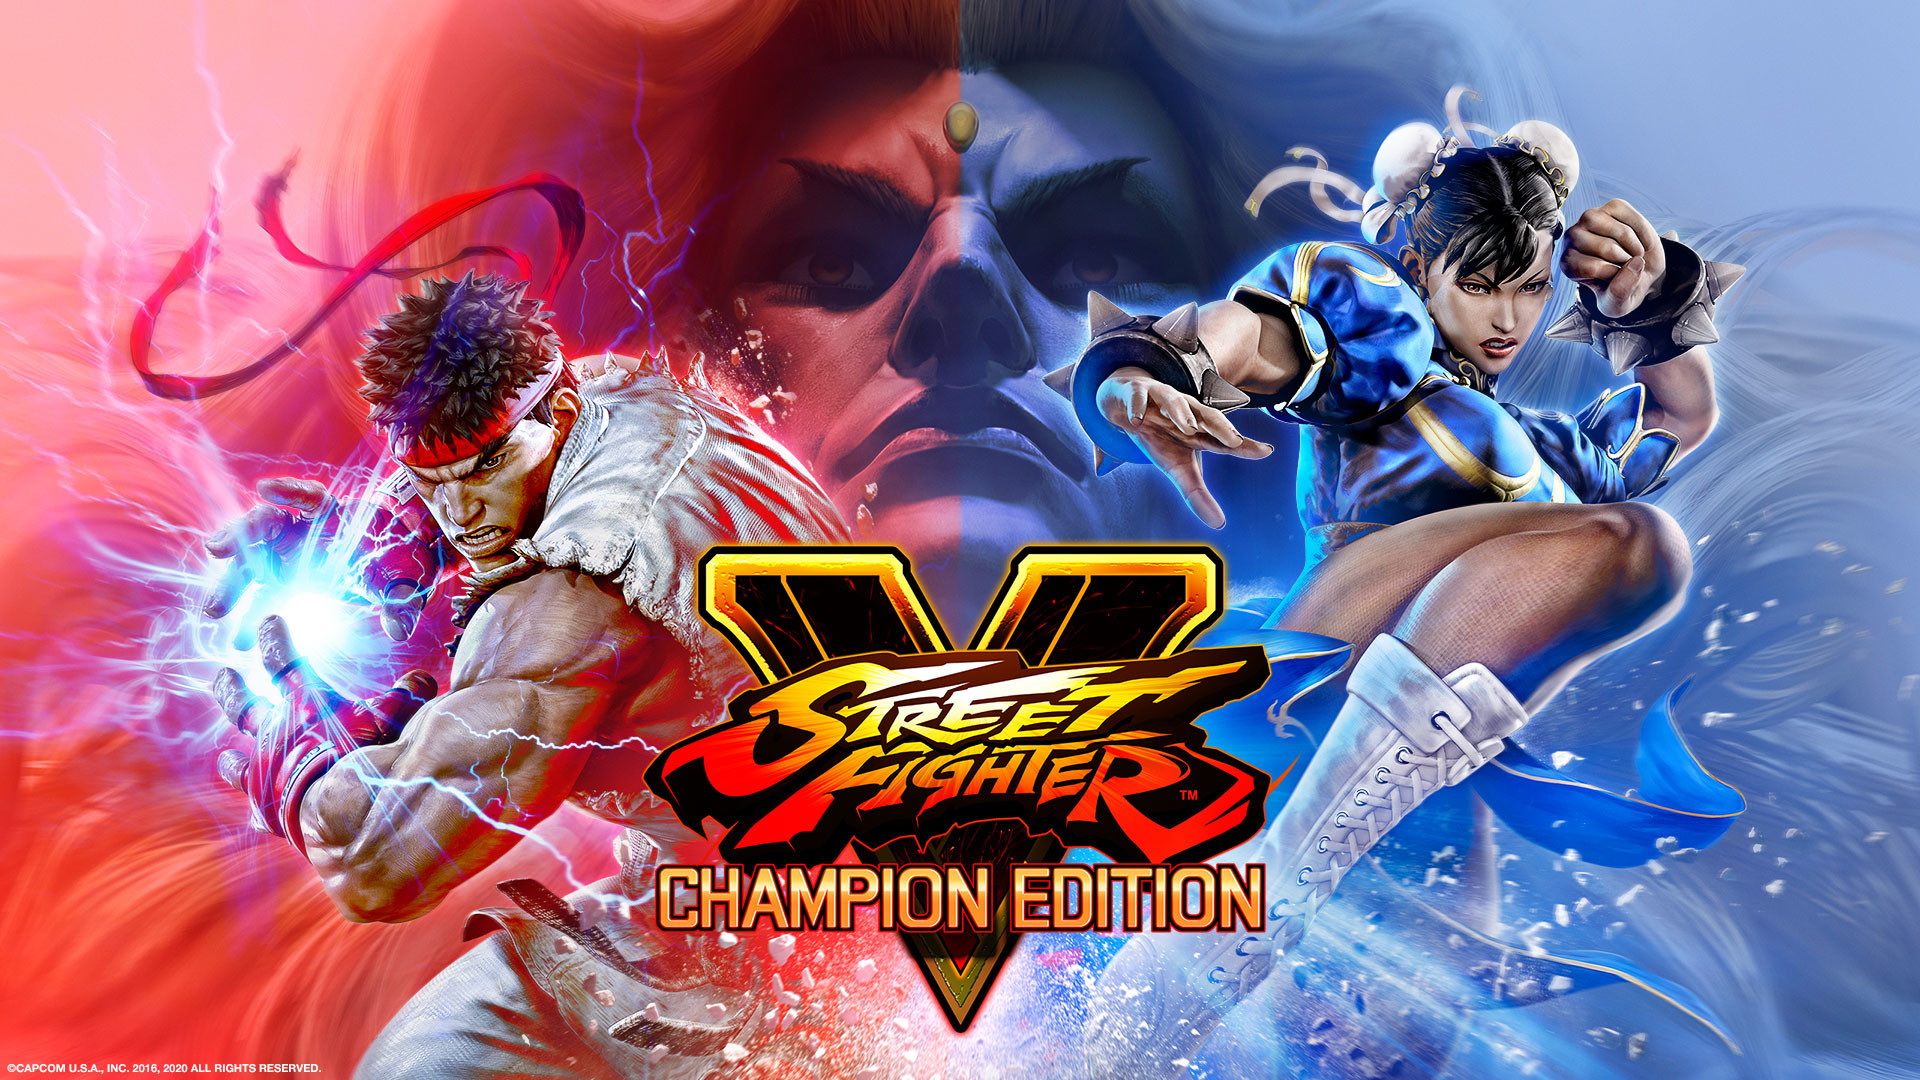 Street Fighter V - Champion Edition Special Wallpapers screenshot